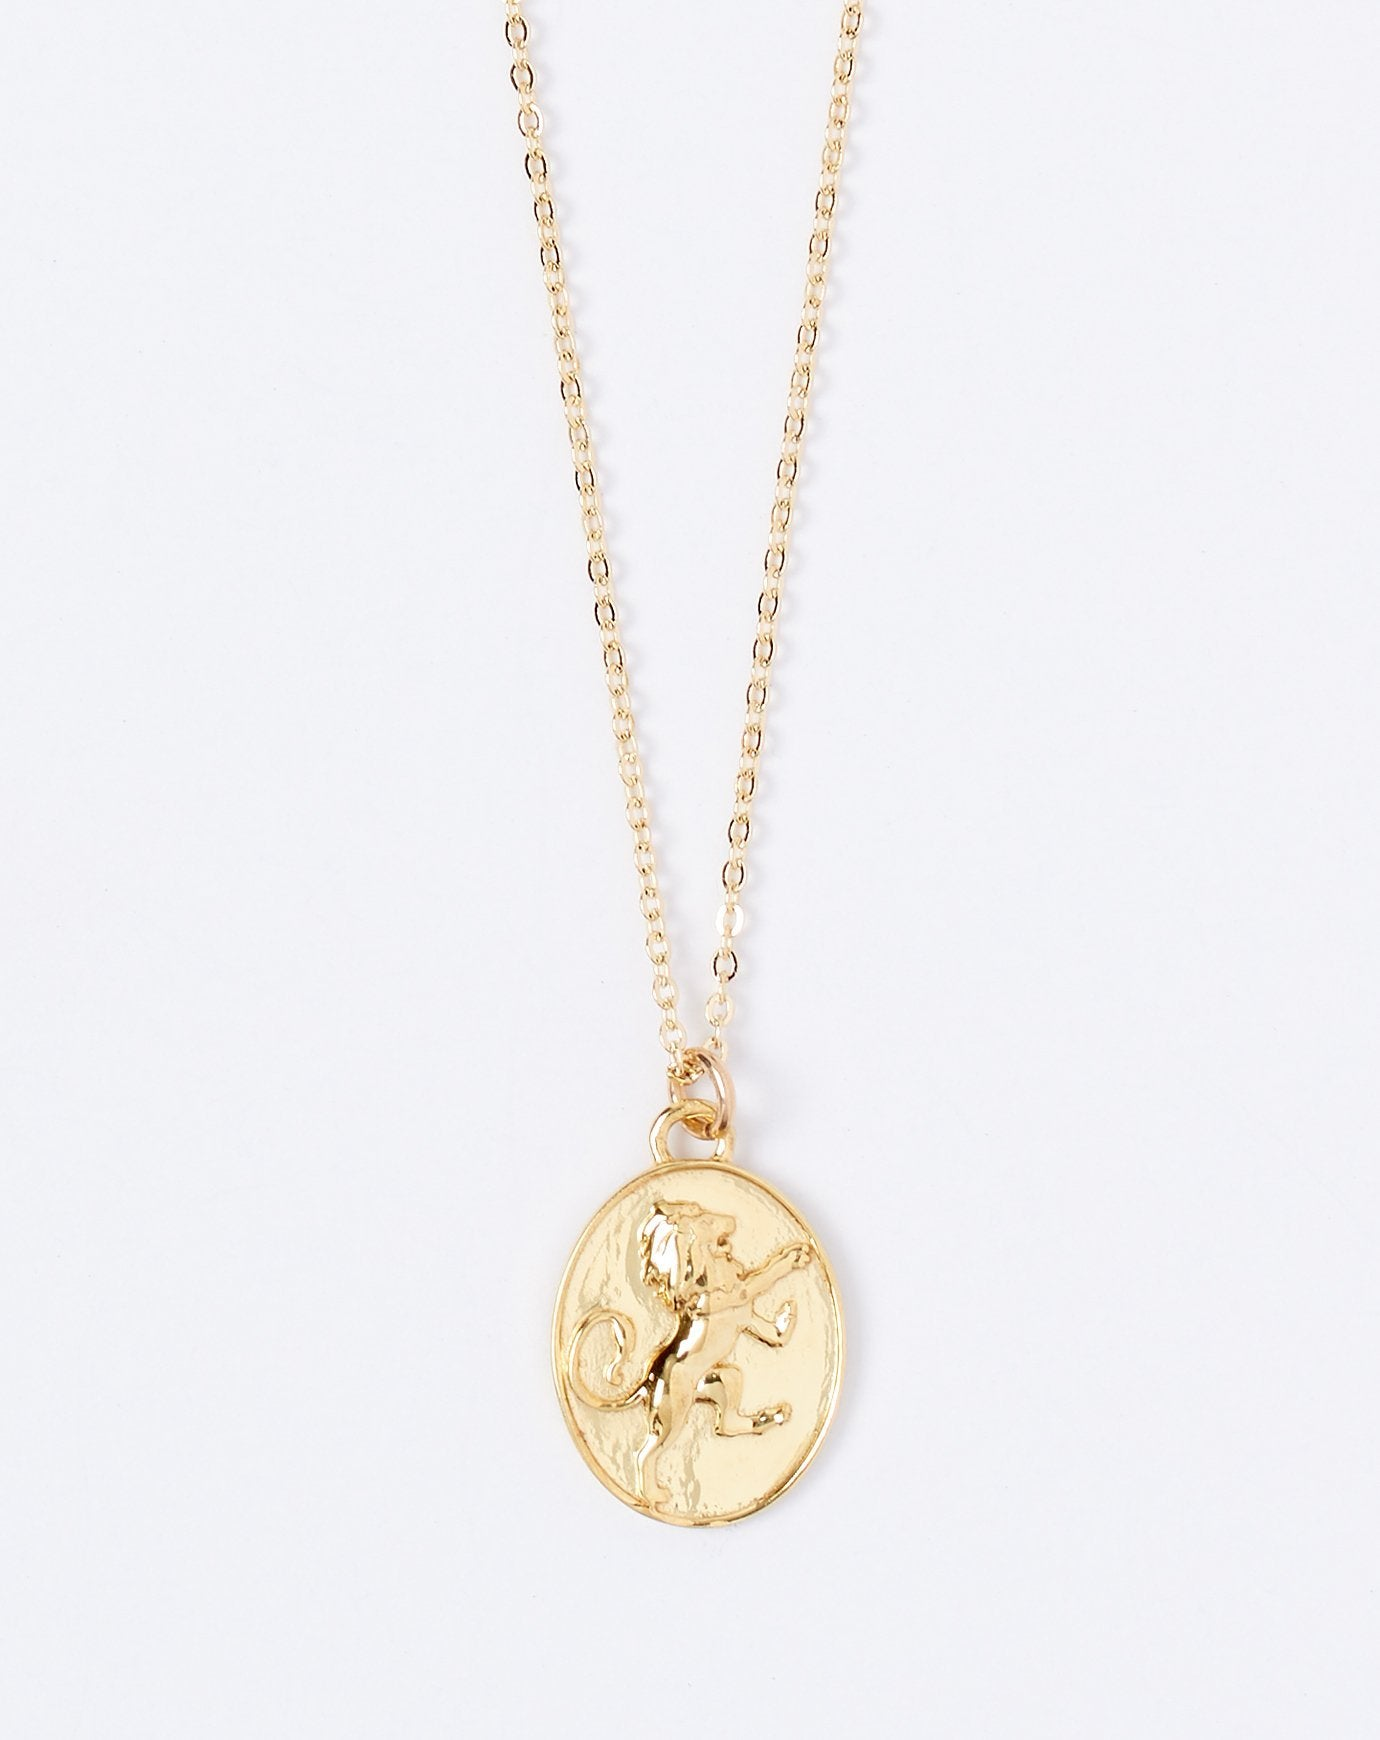 Talon Zodiac Pendant Necklace - Leo